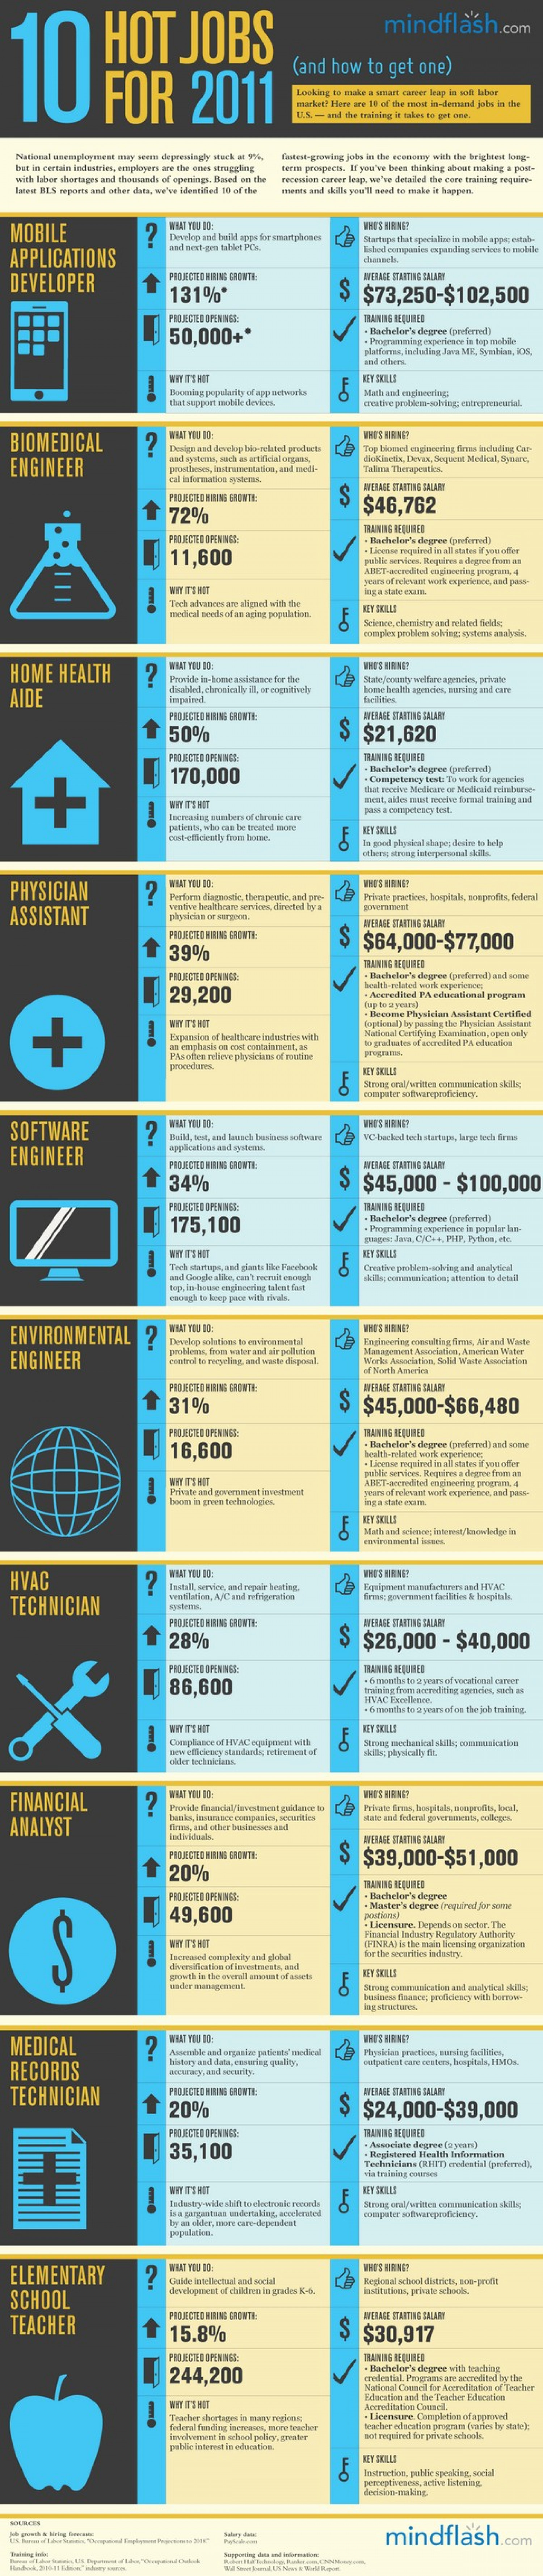 10 Hot Jobs for 2011 Infographic